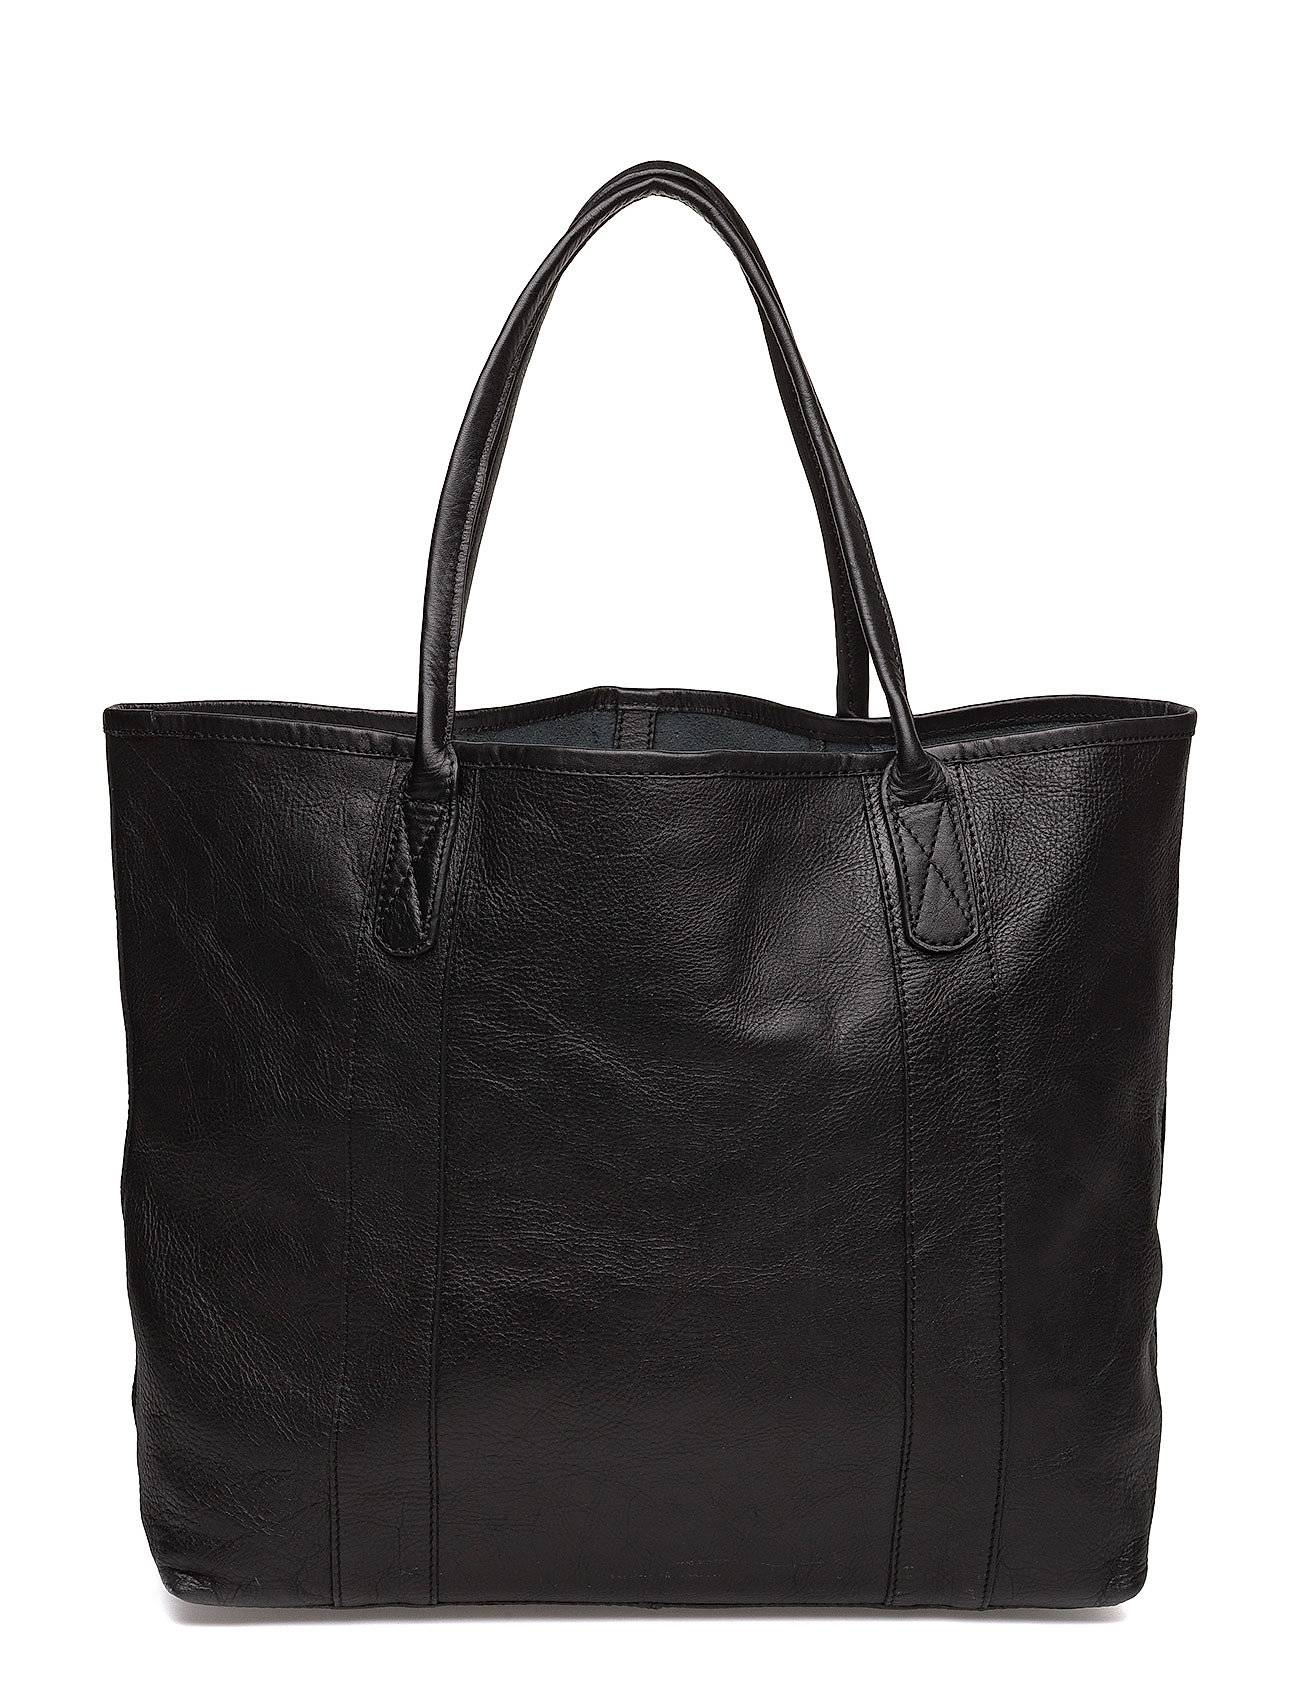 Lexington Clothing Mayflower Leather Tote Bag